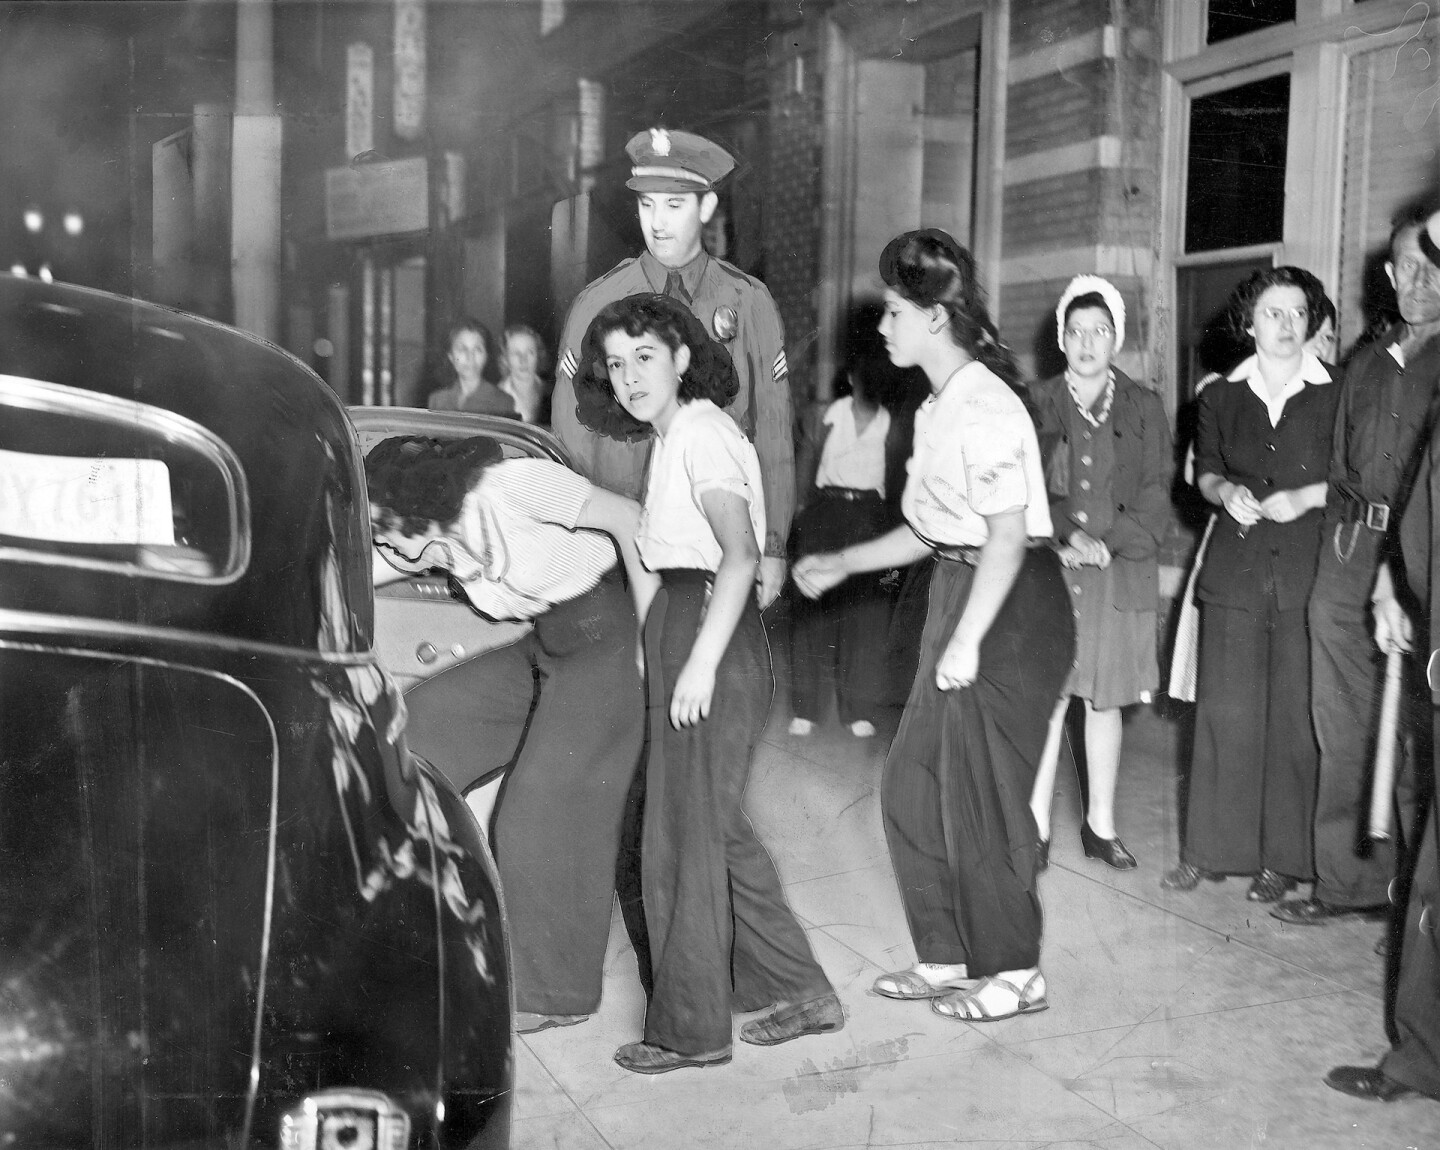 The 'black widow' girls gang, shown as they prepared to get into police car, 1942.